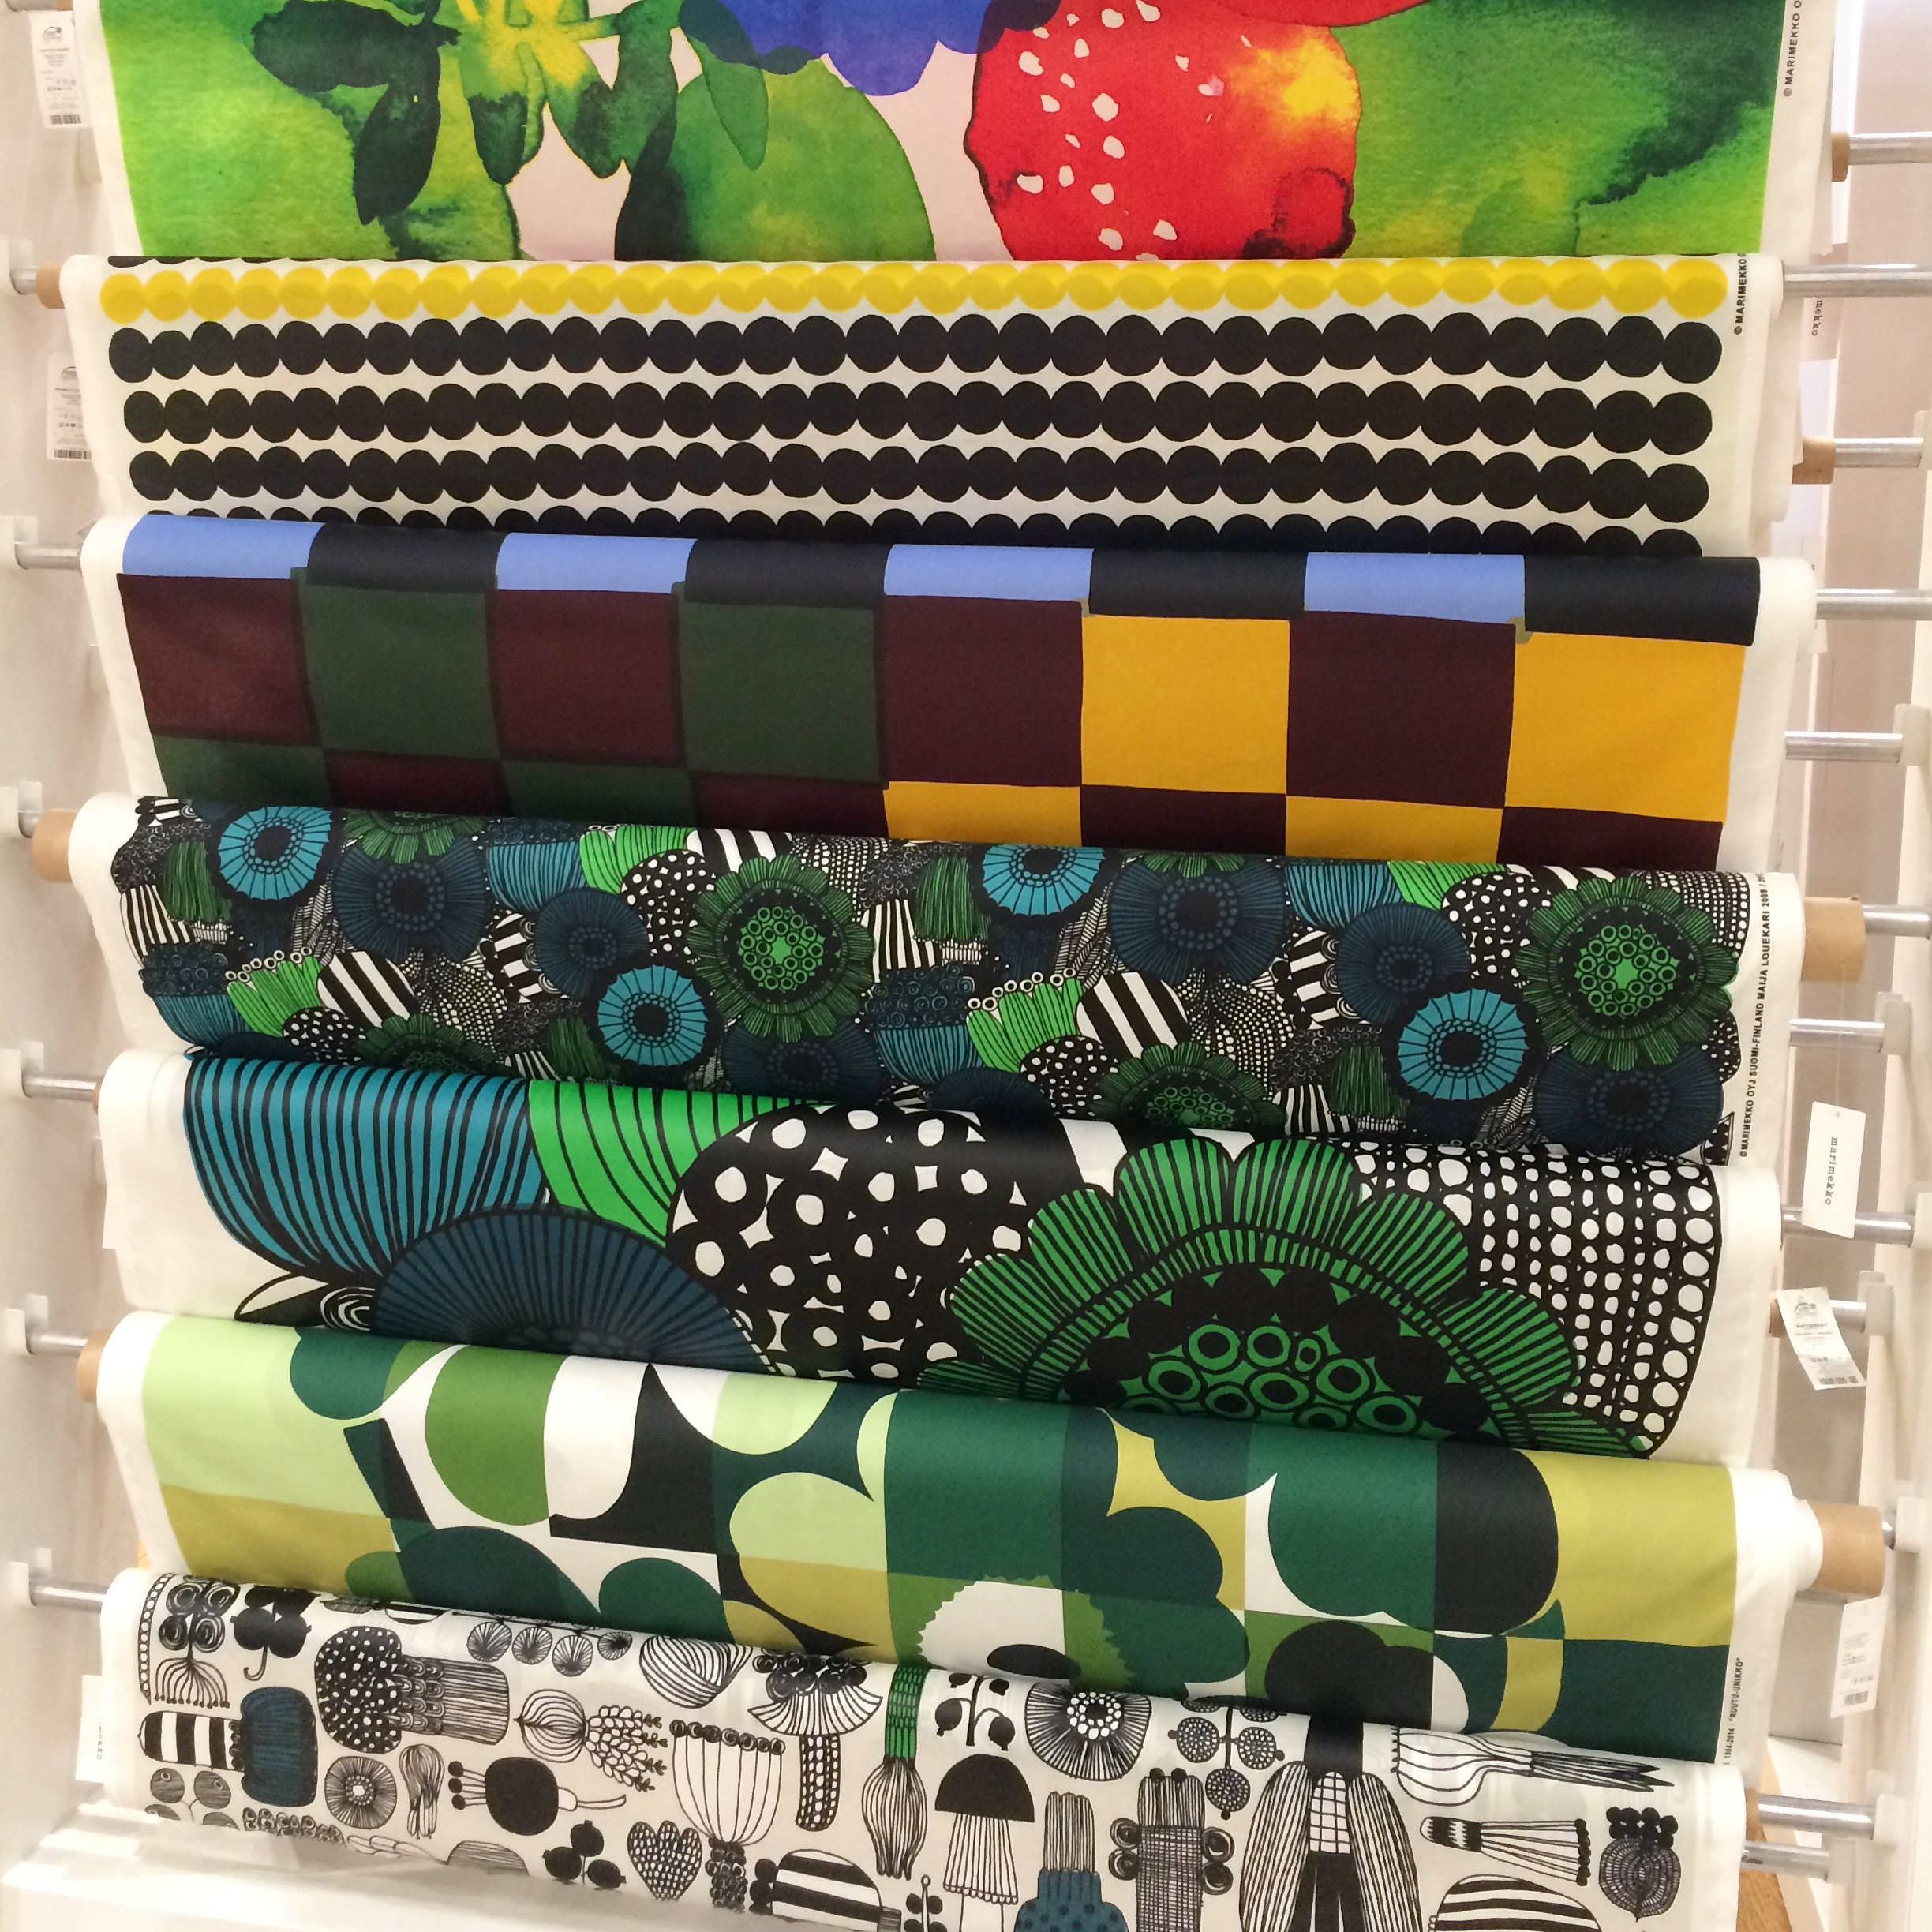 I Stumbled Across The Beautiful Marimekko Store In Central Sydney. The  Finnish Design House Stocks Clothing And Home Ware With Fun And Colourful  Patterns.